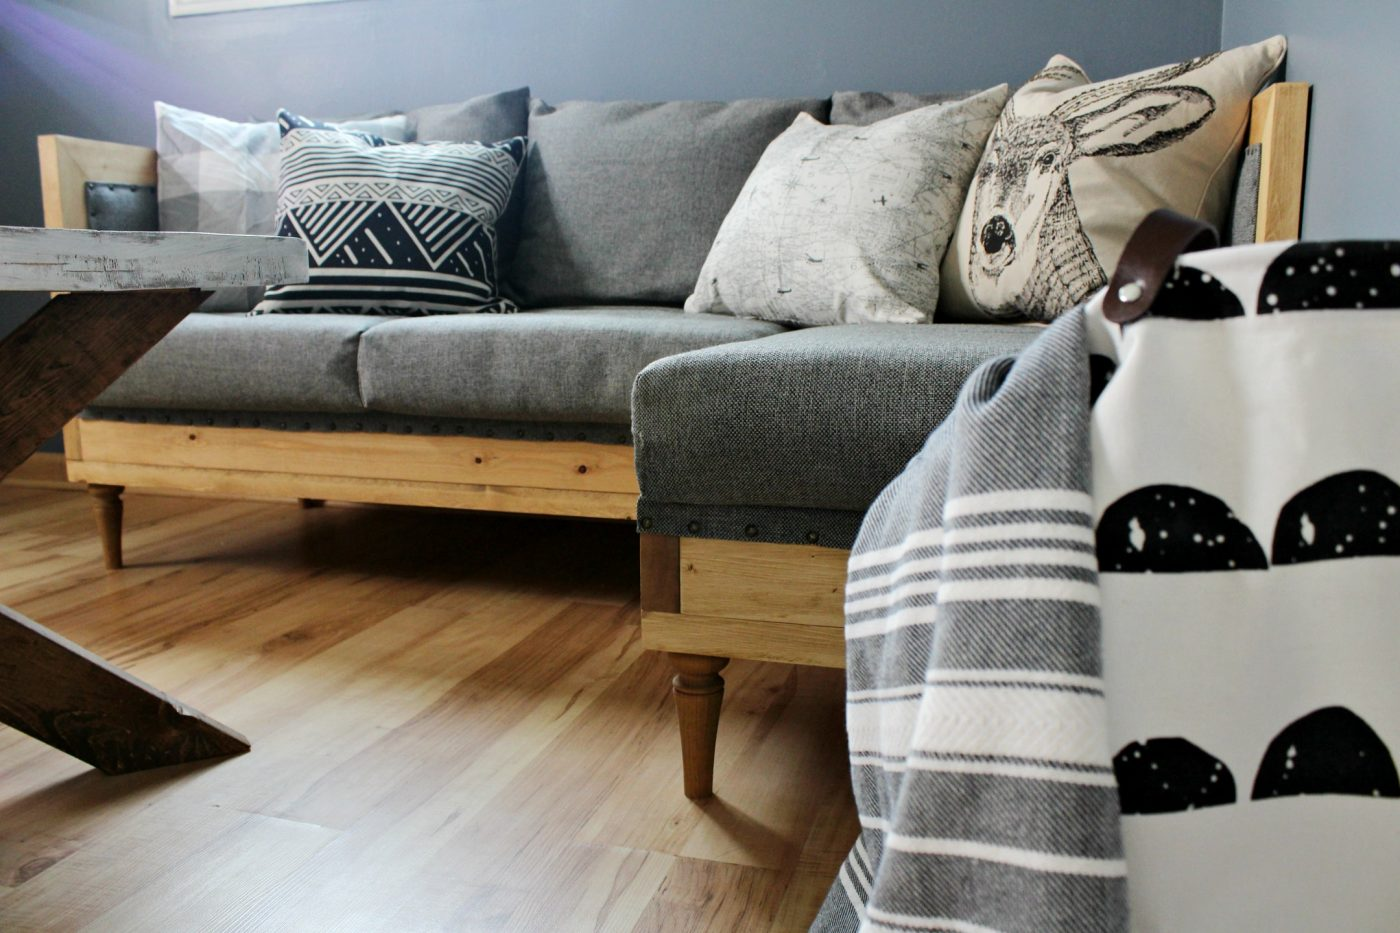 Build your own wood furniture Diy Farmhouse How To Upholster Wood Frame Couchfree Building Plans To Build Your Own Woodshop Diaries Build Your Own Diy Upholstered Couch